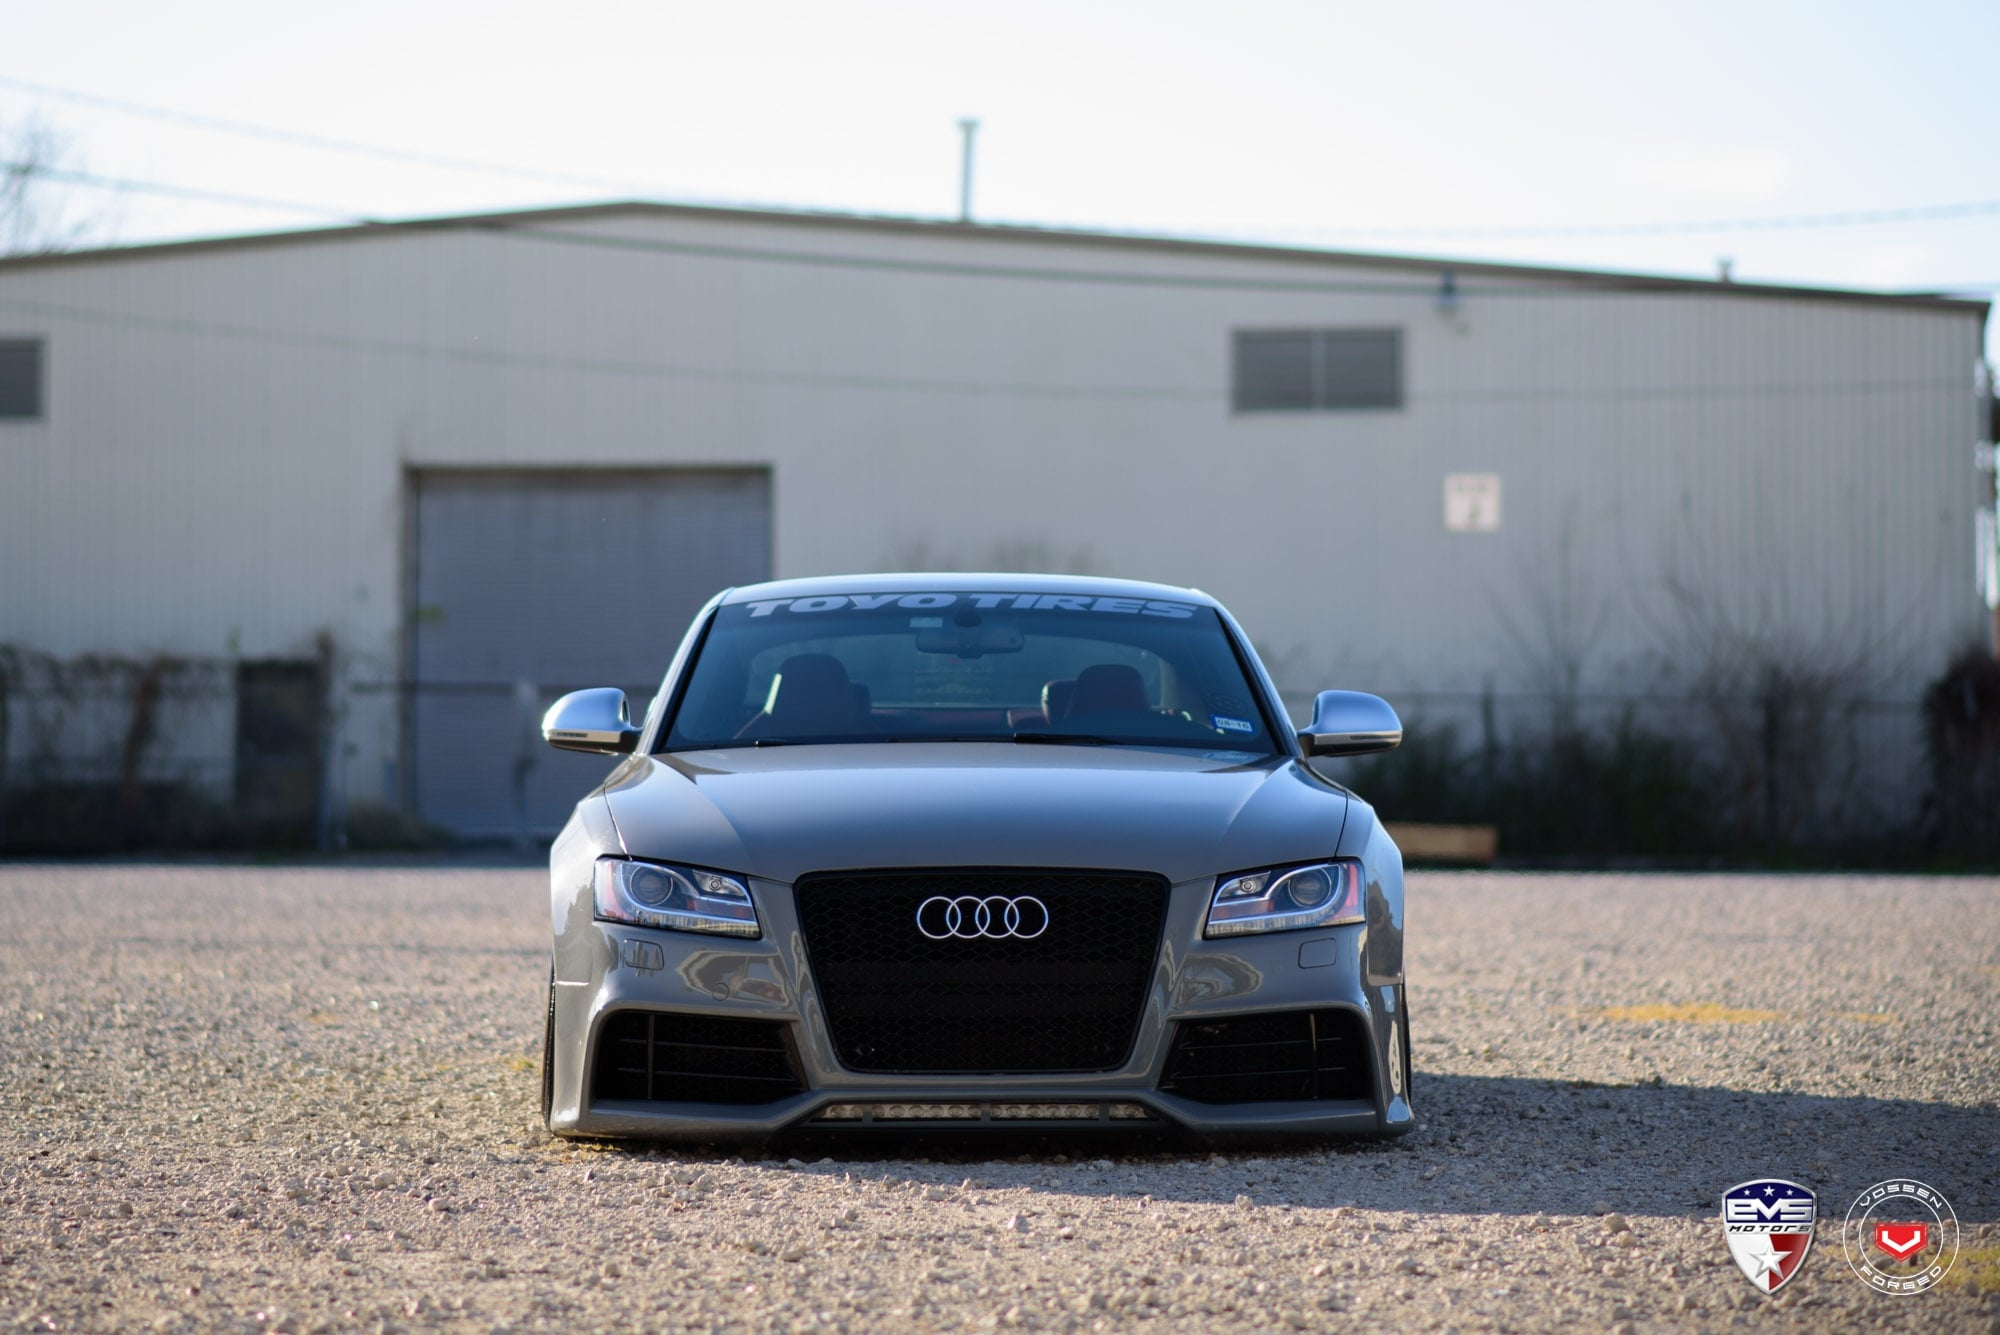 Cool 2015 Audi S5 Coupe Tuning HD pic for PC